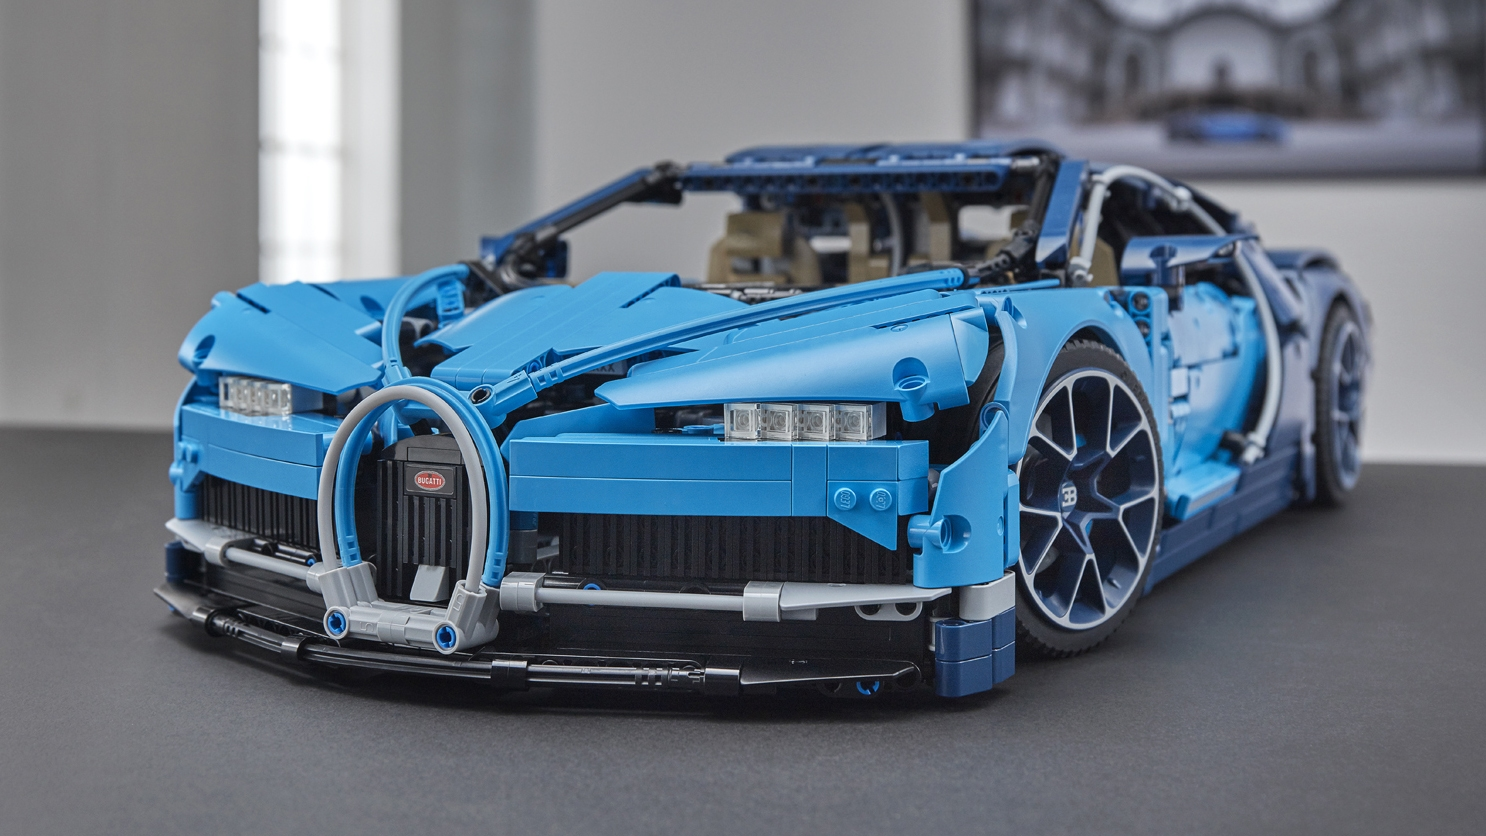 2018 Bugatti Chiron Lego Technic kit is amazingly detailed   DeviceDaily.com